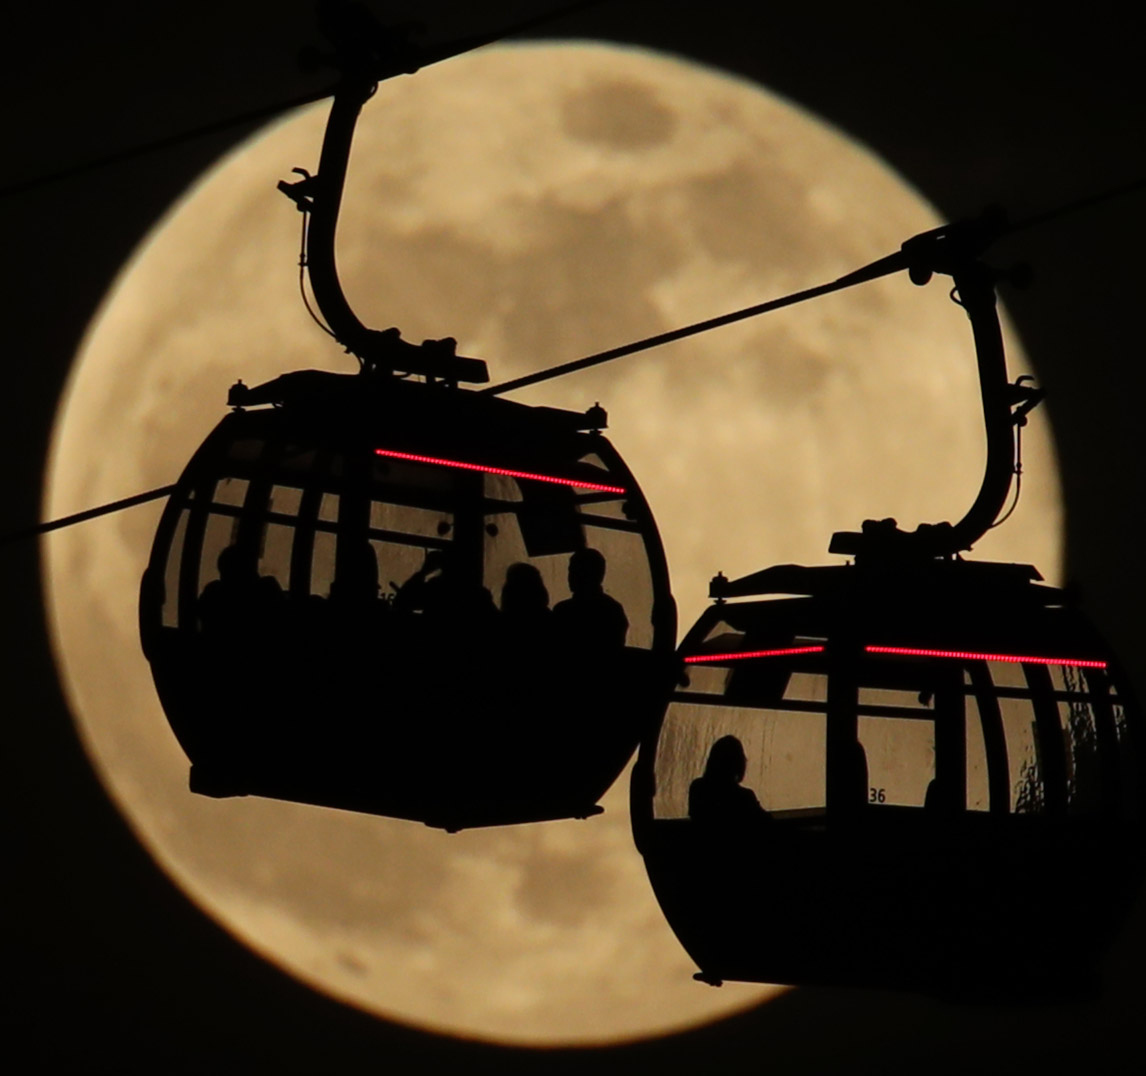 'Don't miss it': 2019's brightest supermoon set to light up the sky